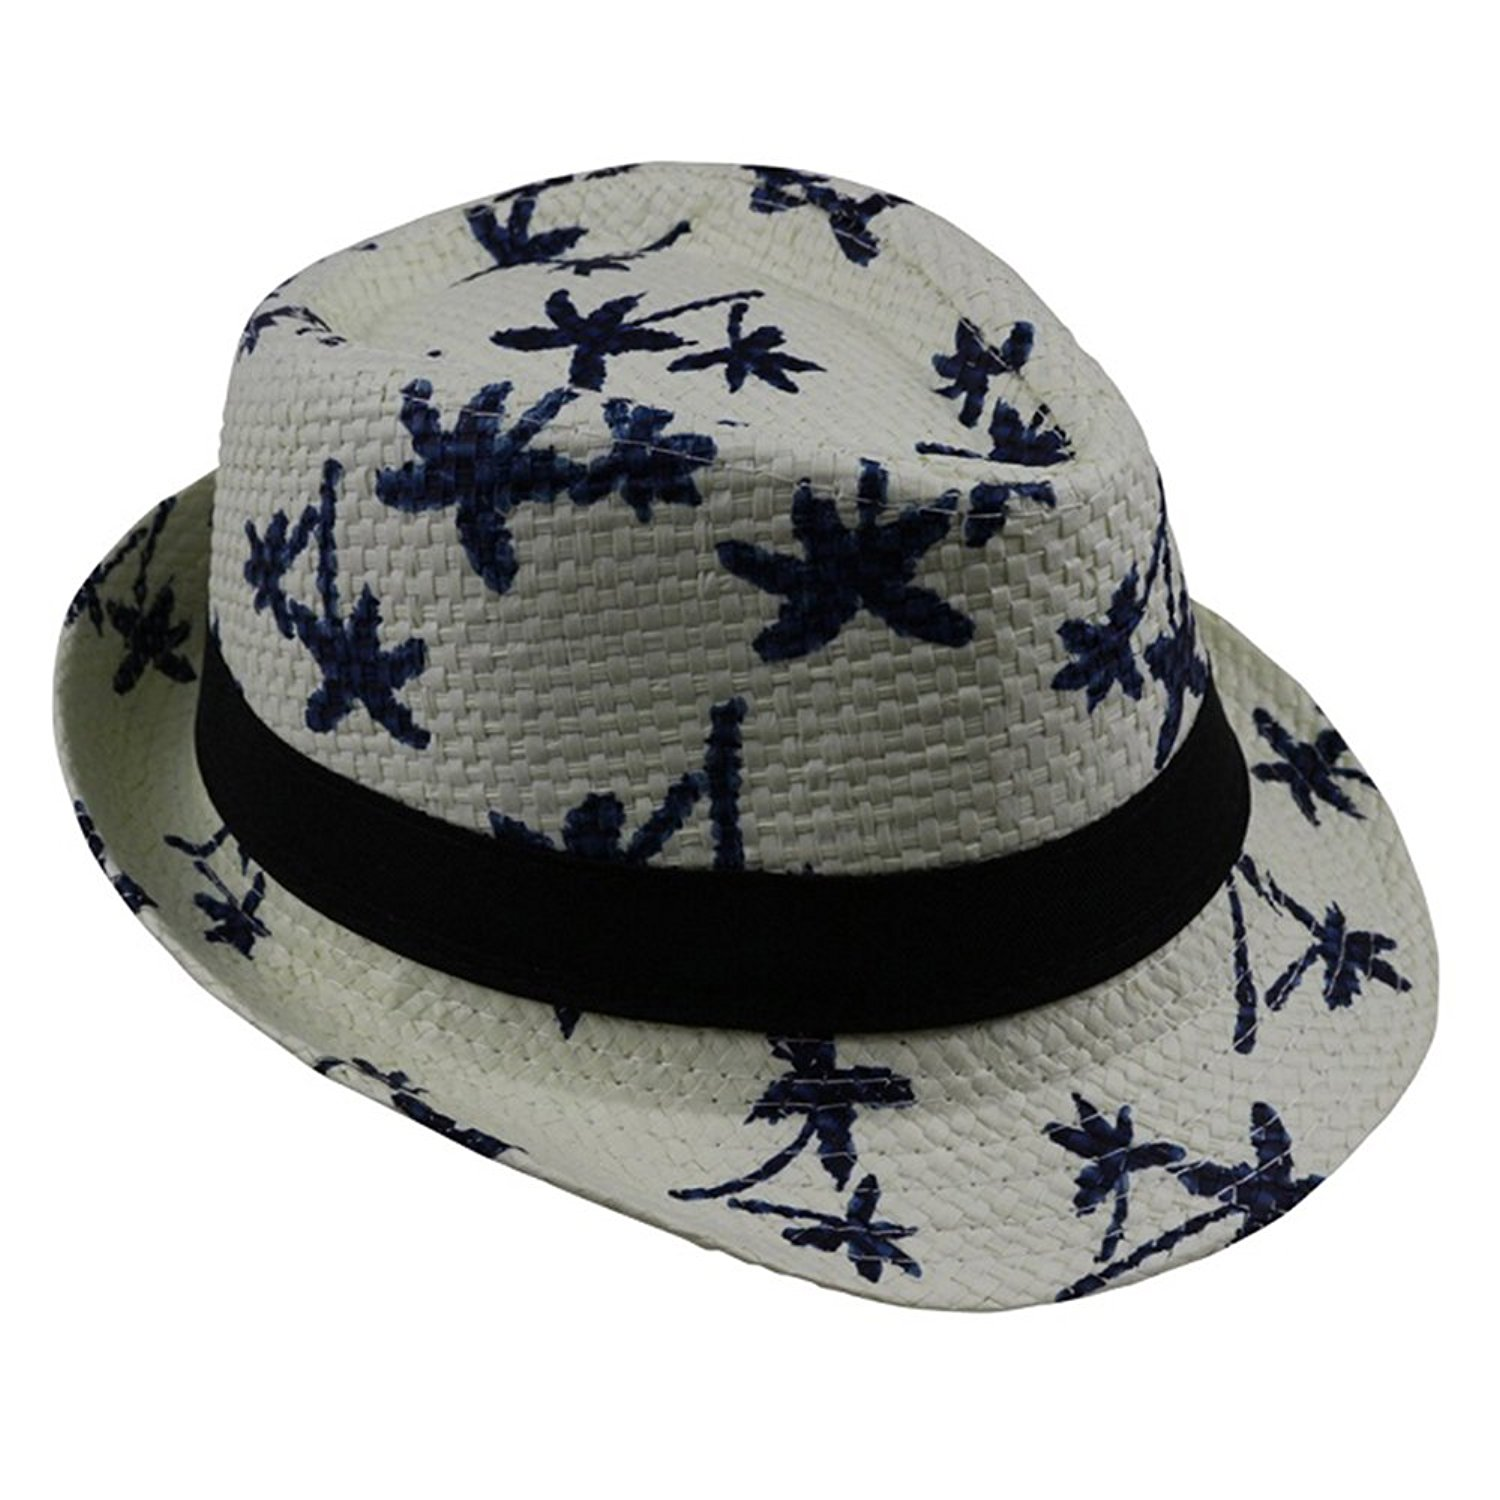 25714e285cc04 Get Quotations · SYBKNSTW Summer Straw Sun Hat Kids Beach Sun Hat Trilby  Panama Hat Handwork for Boy Girl